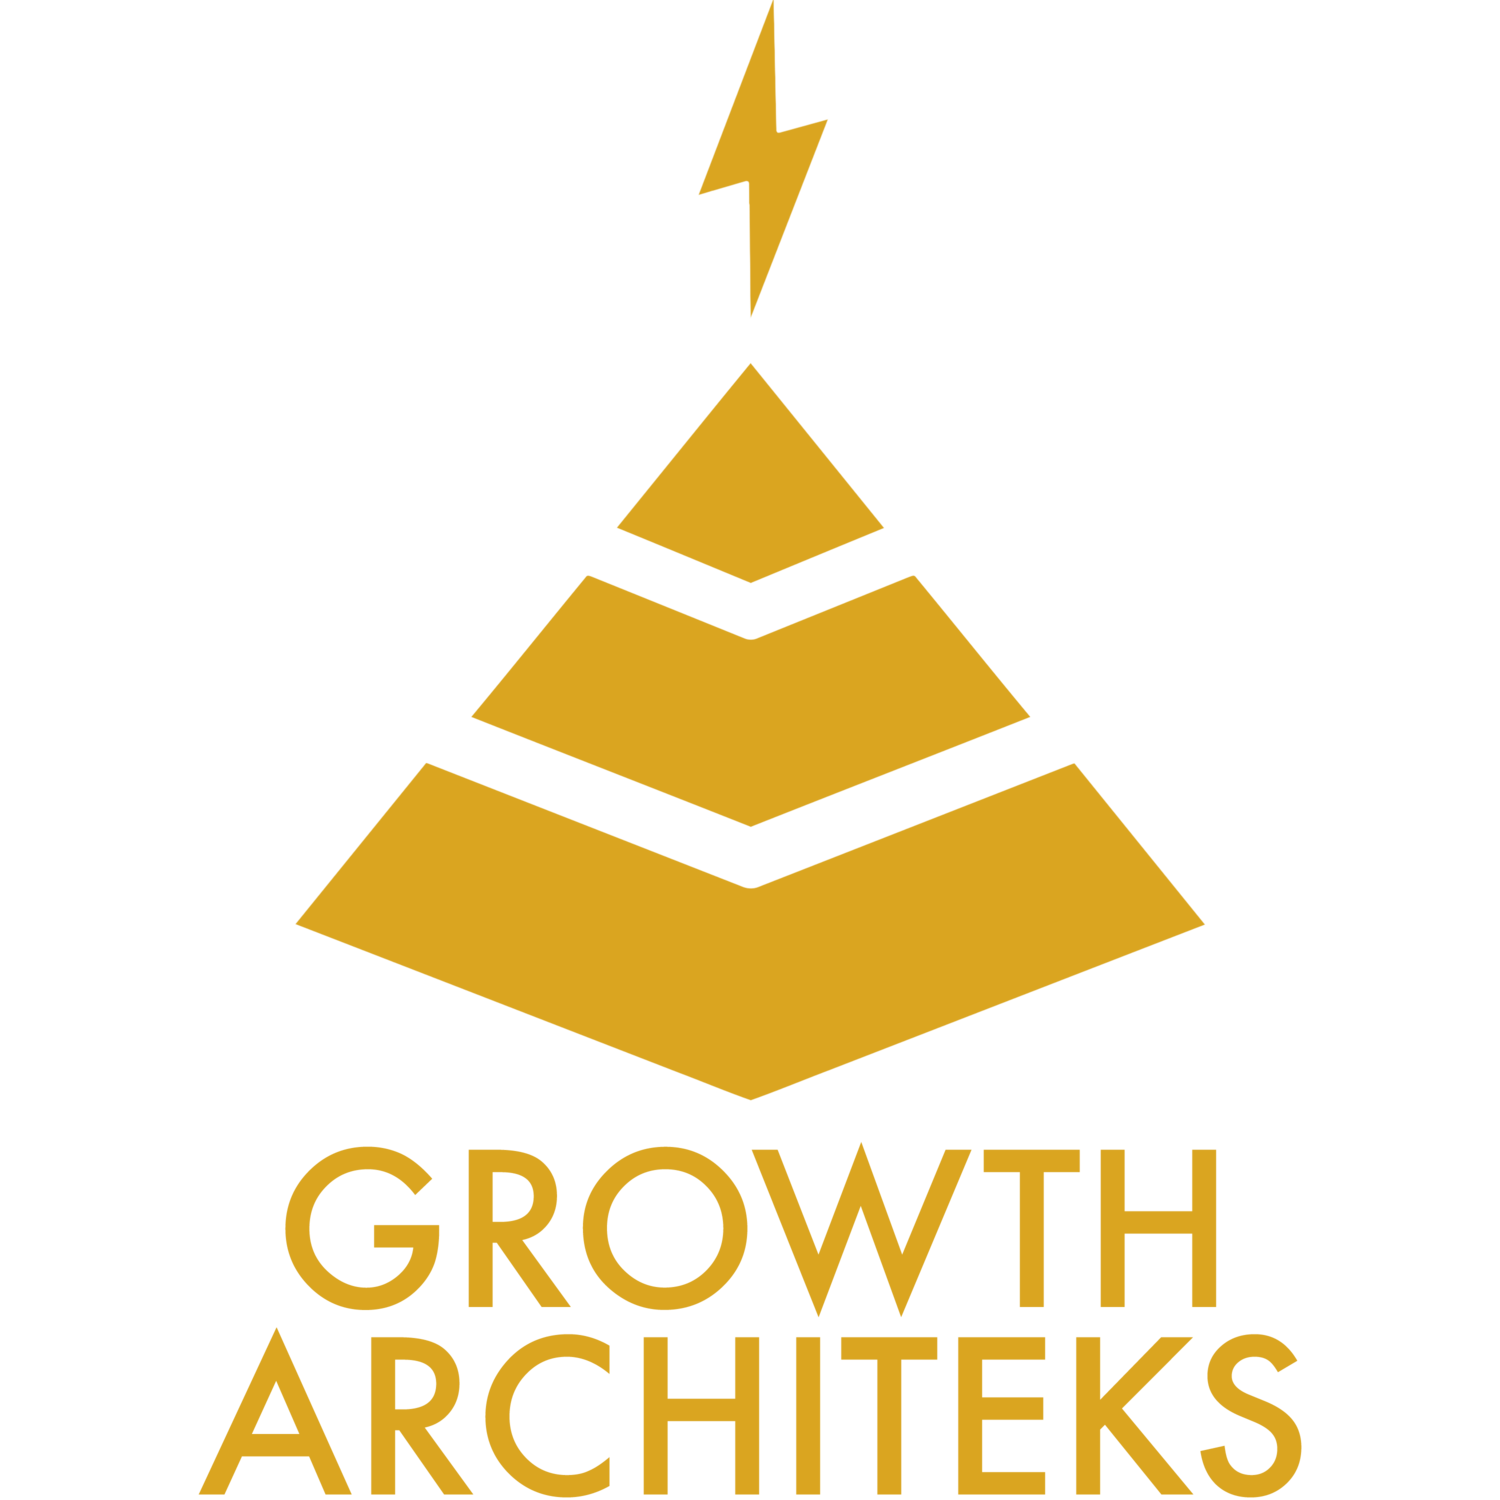 Growth Architeks